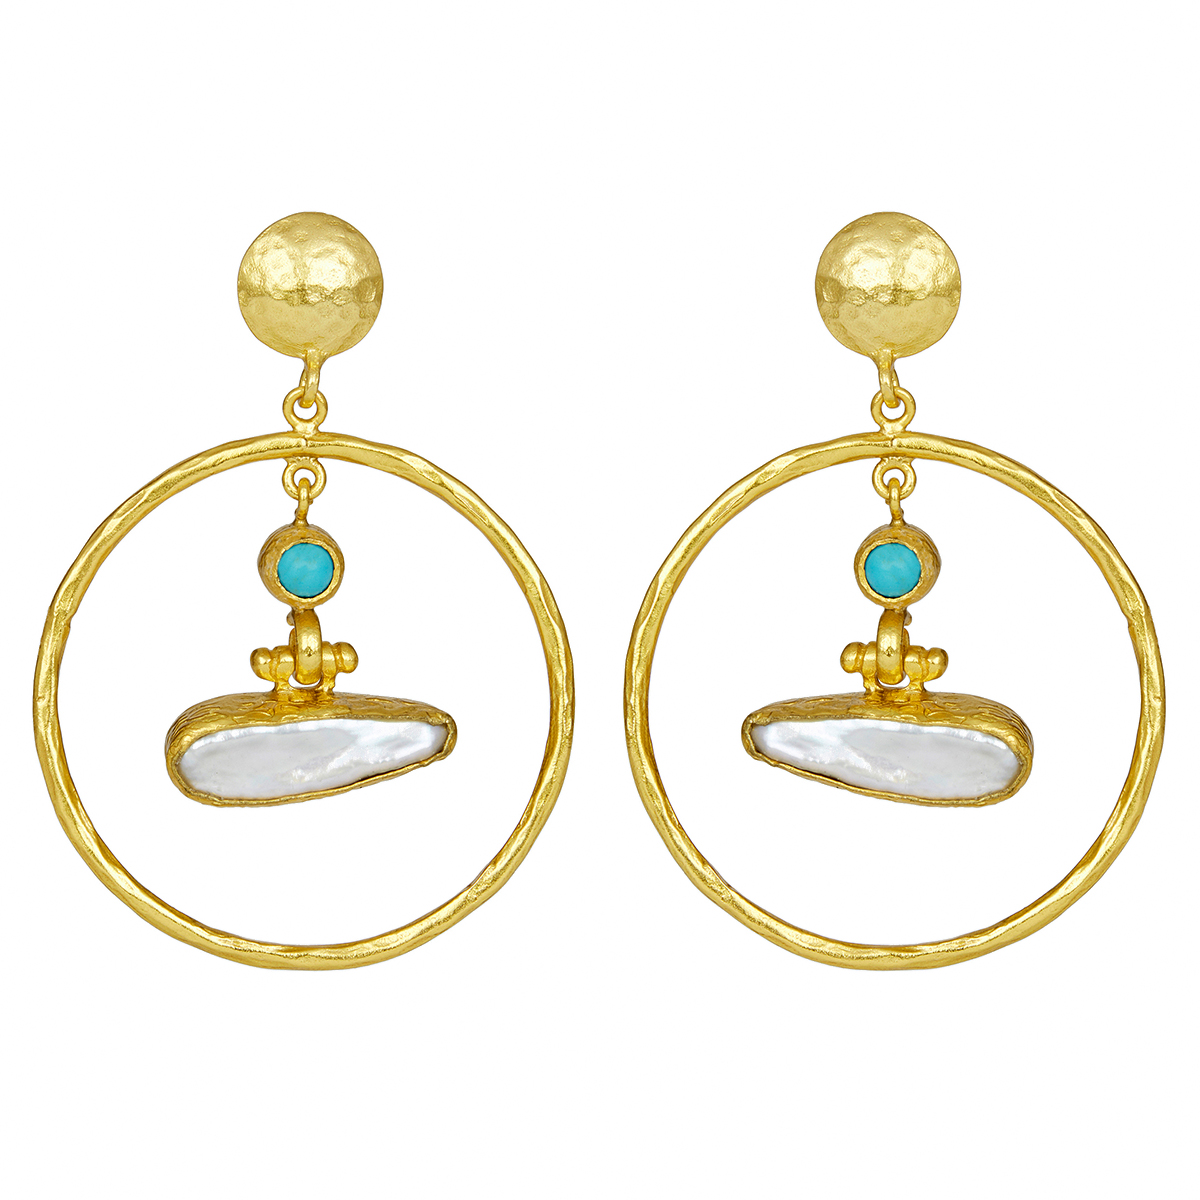 Pearl and turquoise loop stud earrings by Ottoman Hands